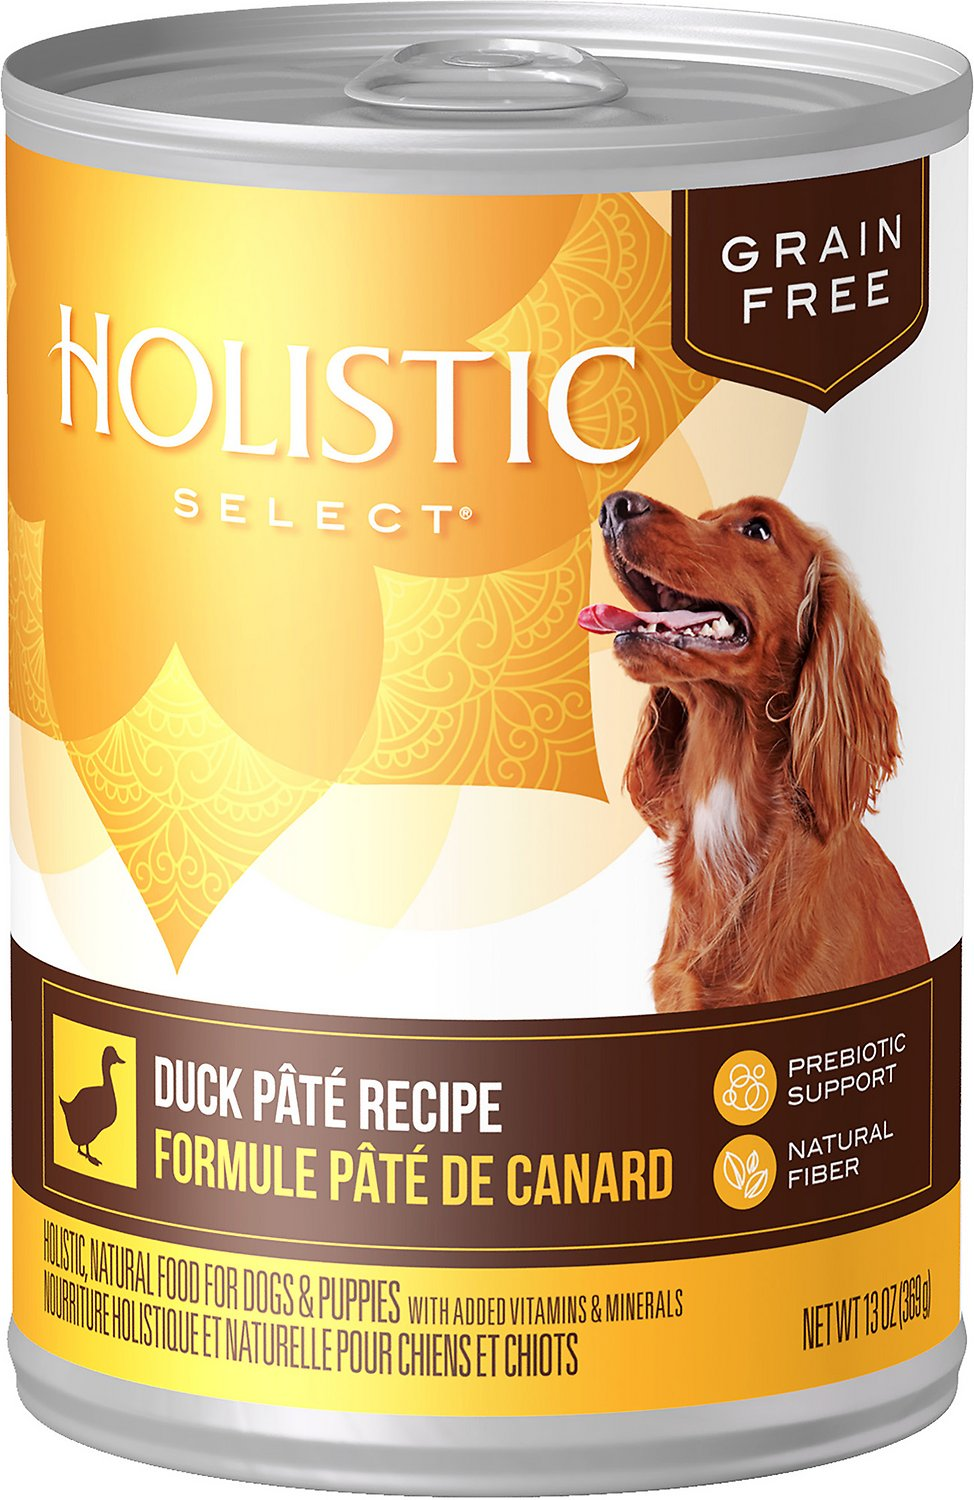 Holistic Select Duck Pate Recipe Grain-Free Canned Dog Food, 13-oz